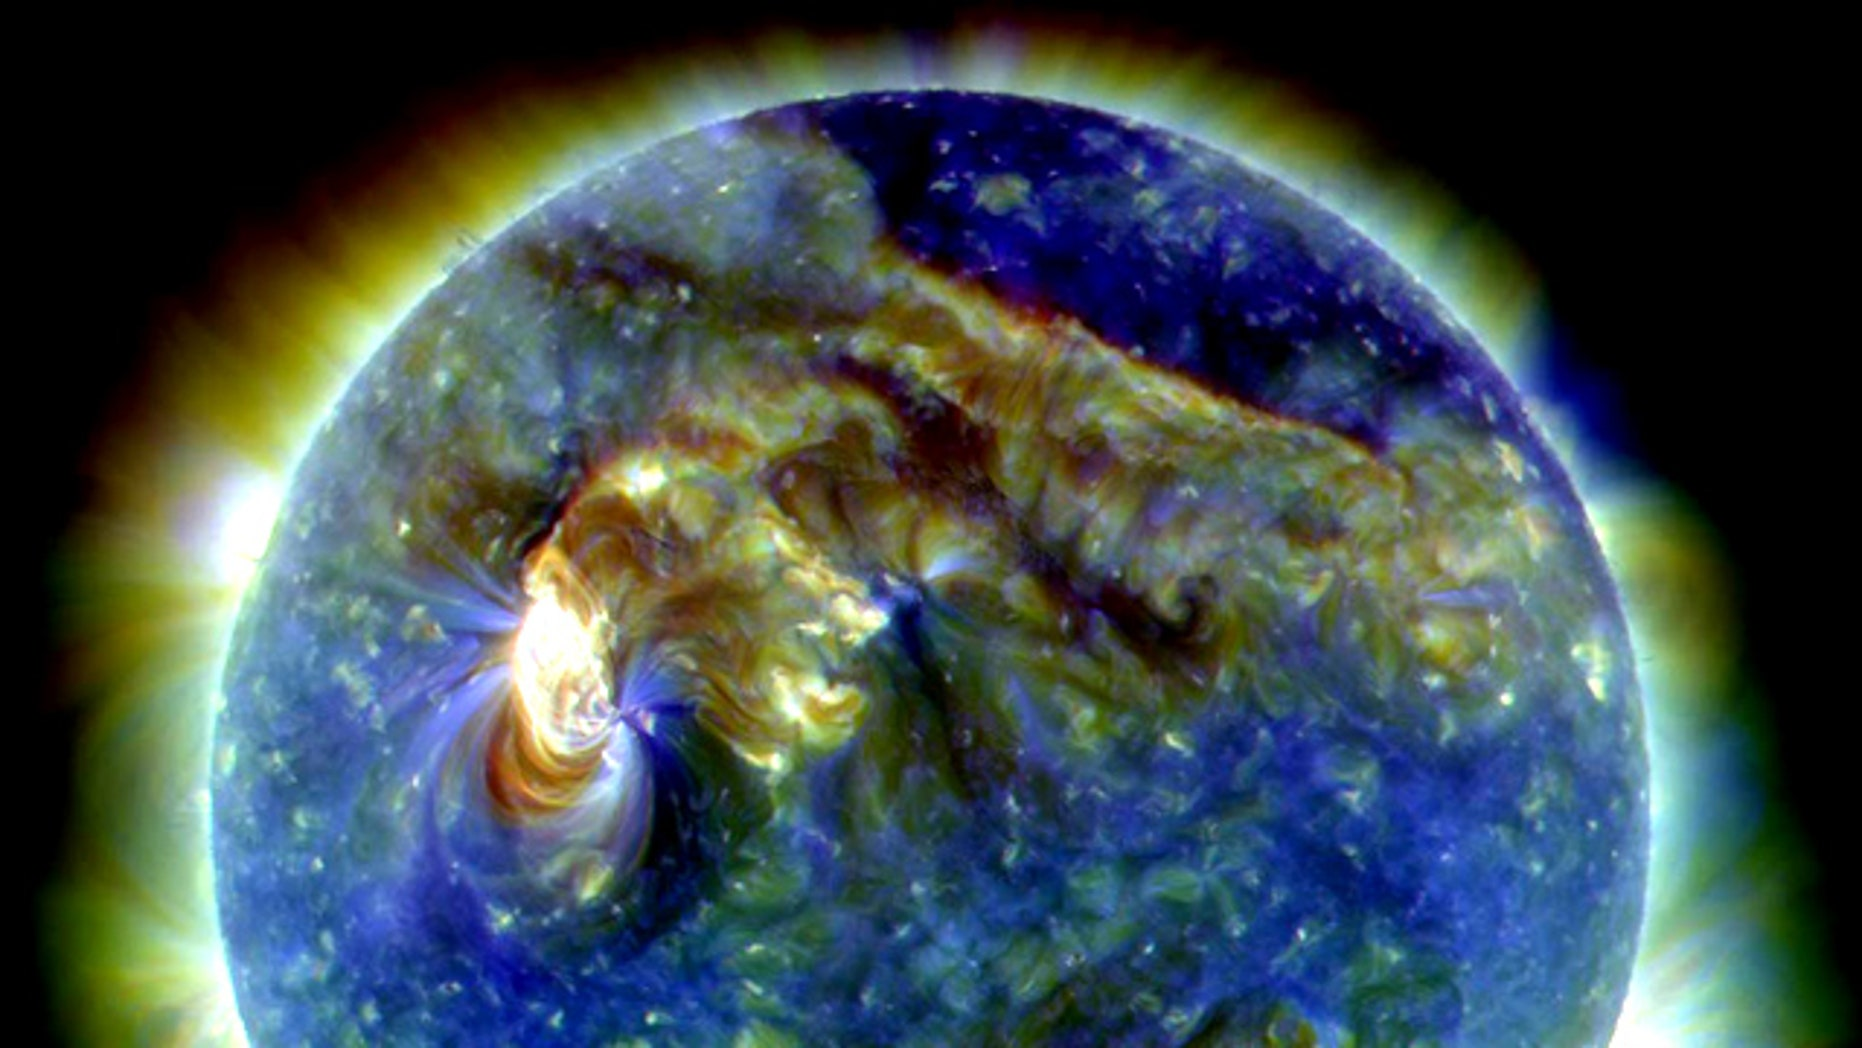 This image taken by NASA's Solar Dynamics Observatory on Aug. 1, 2010, shows a major sun storm that kicked up two massive coronal mass ejections toward Earth during an intense series of solar eruptions.